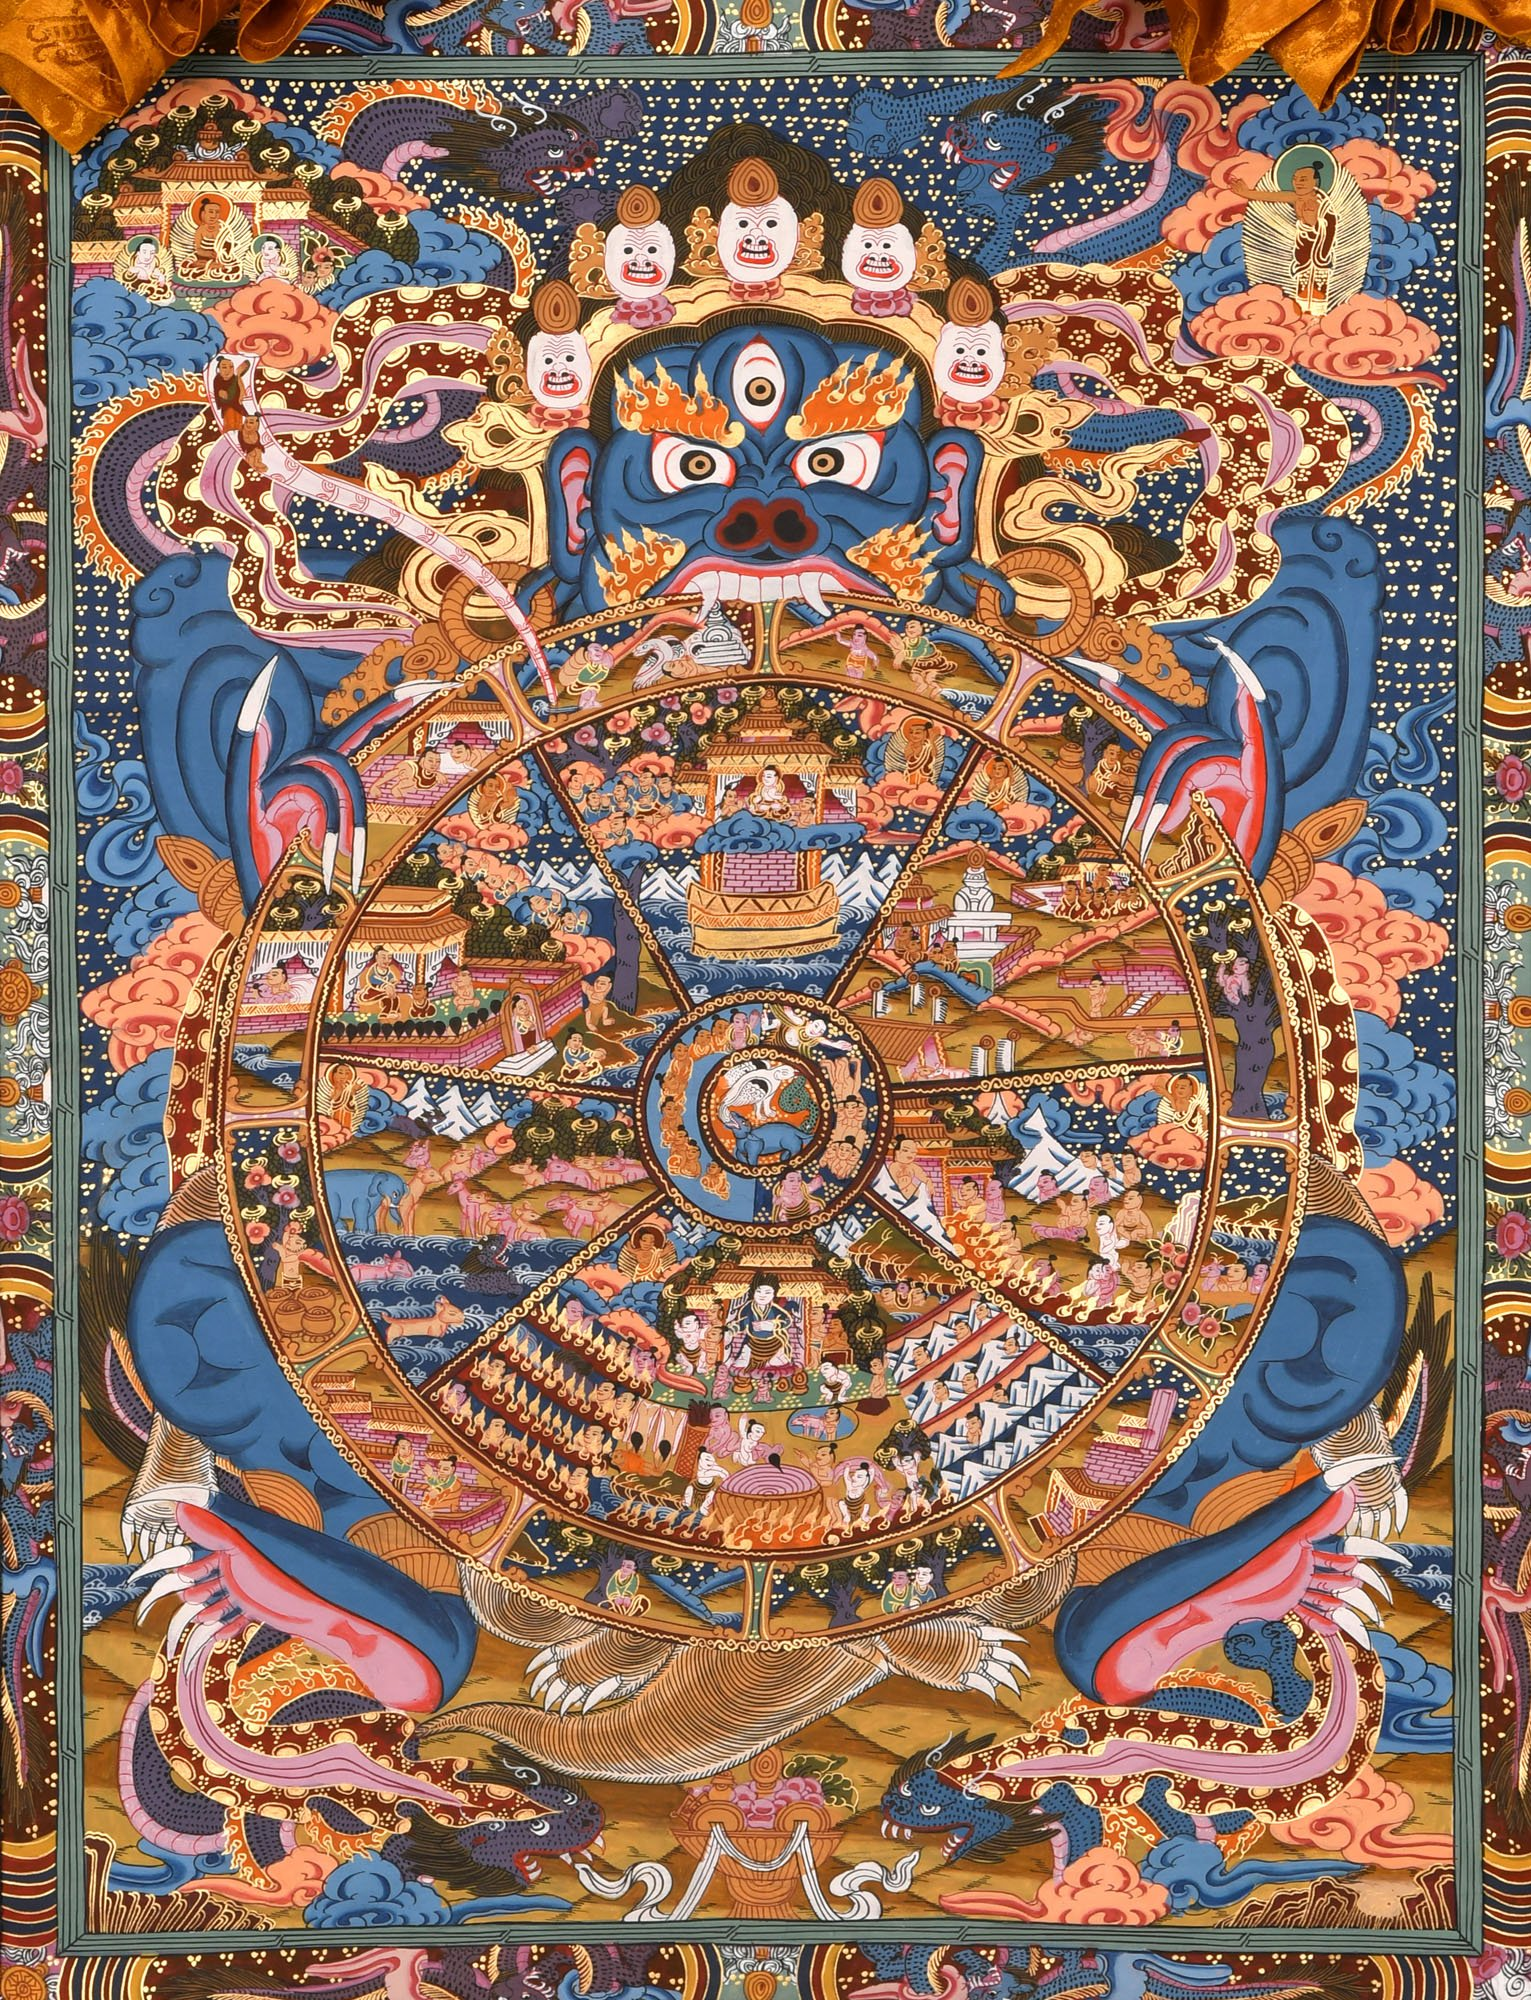 Tibetan Buddhist Wheel of Life, also known as The Wheel of Transmigration